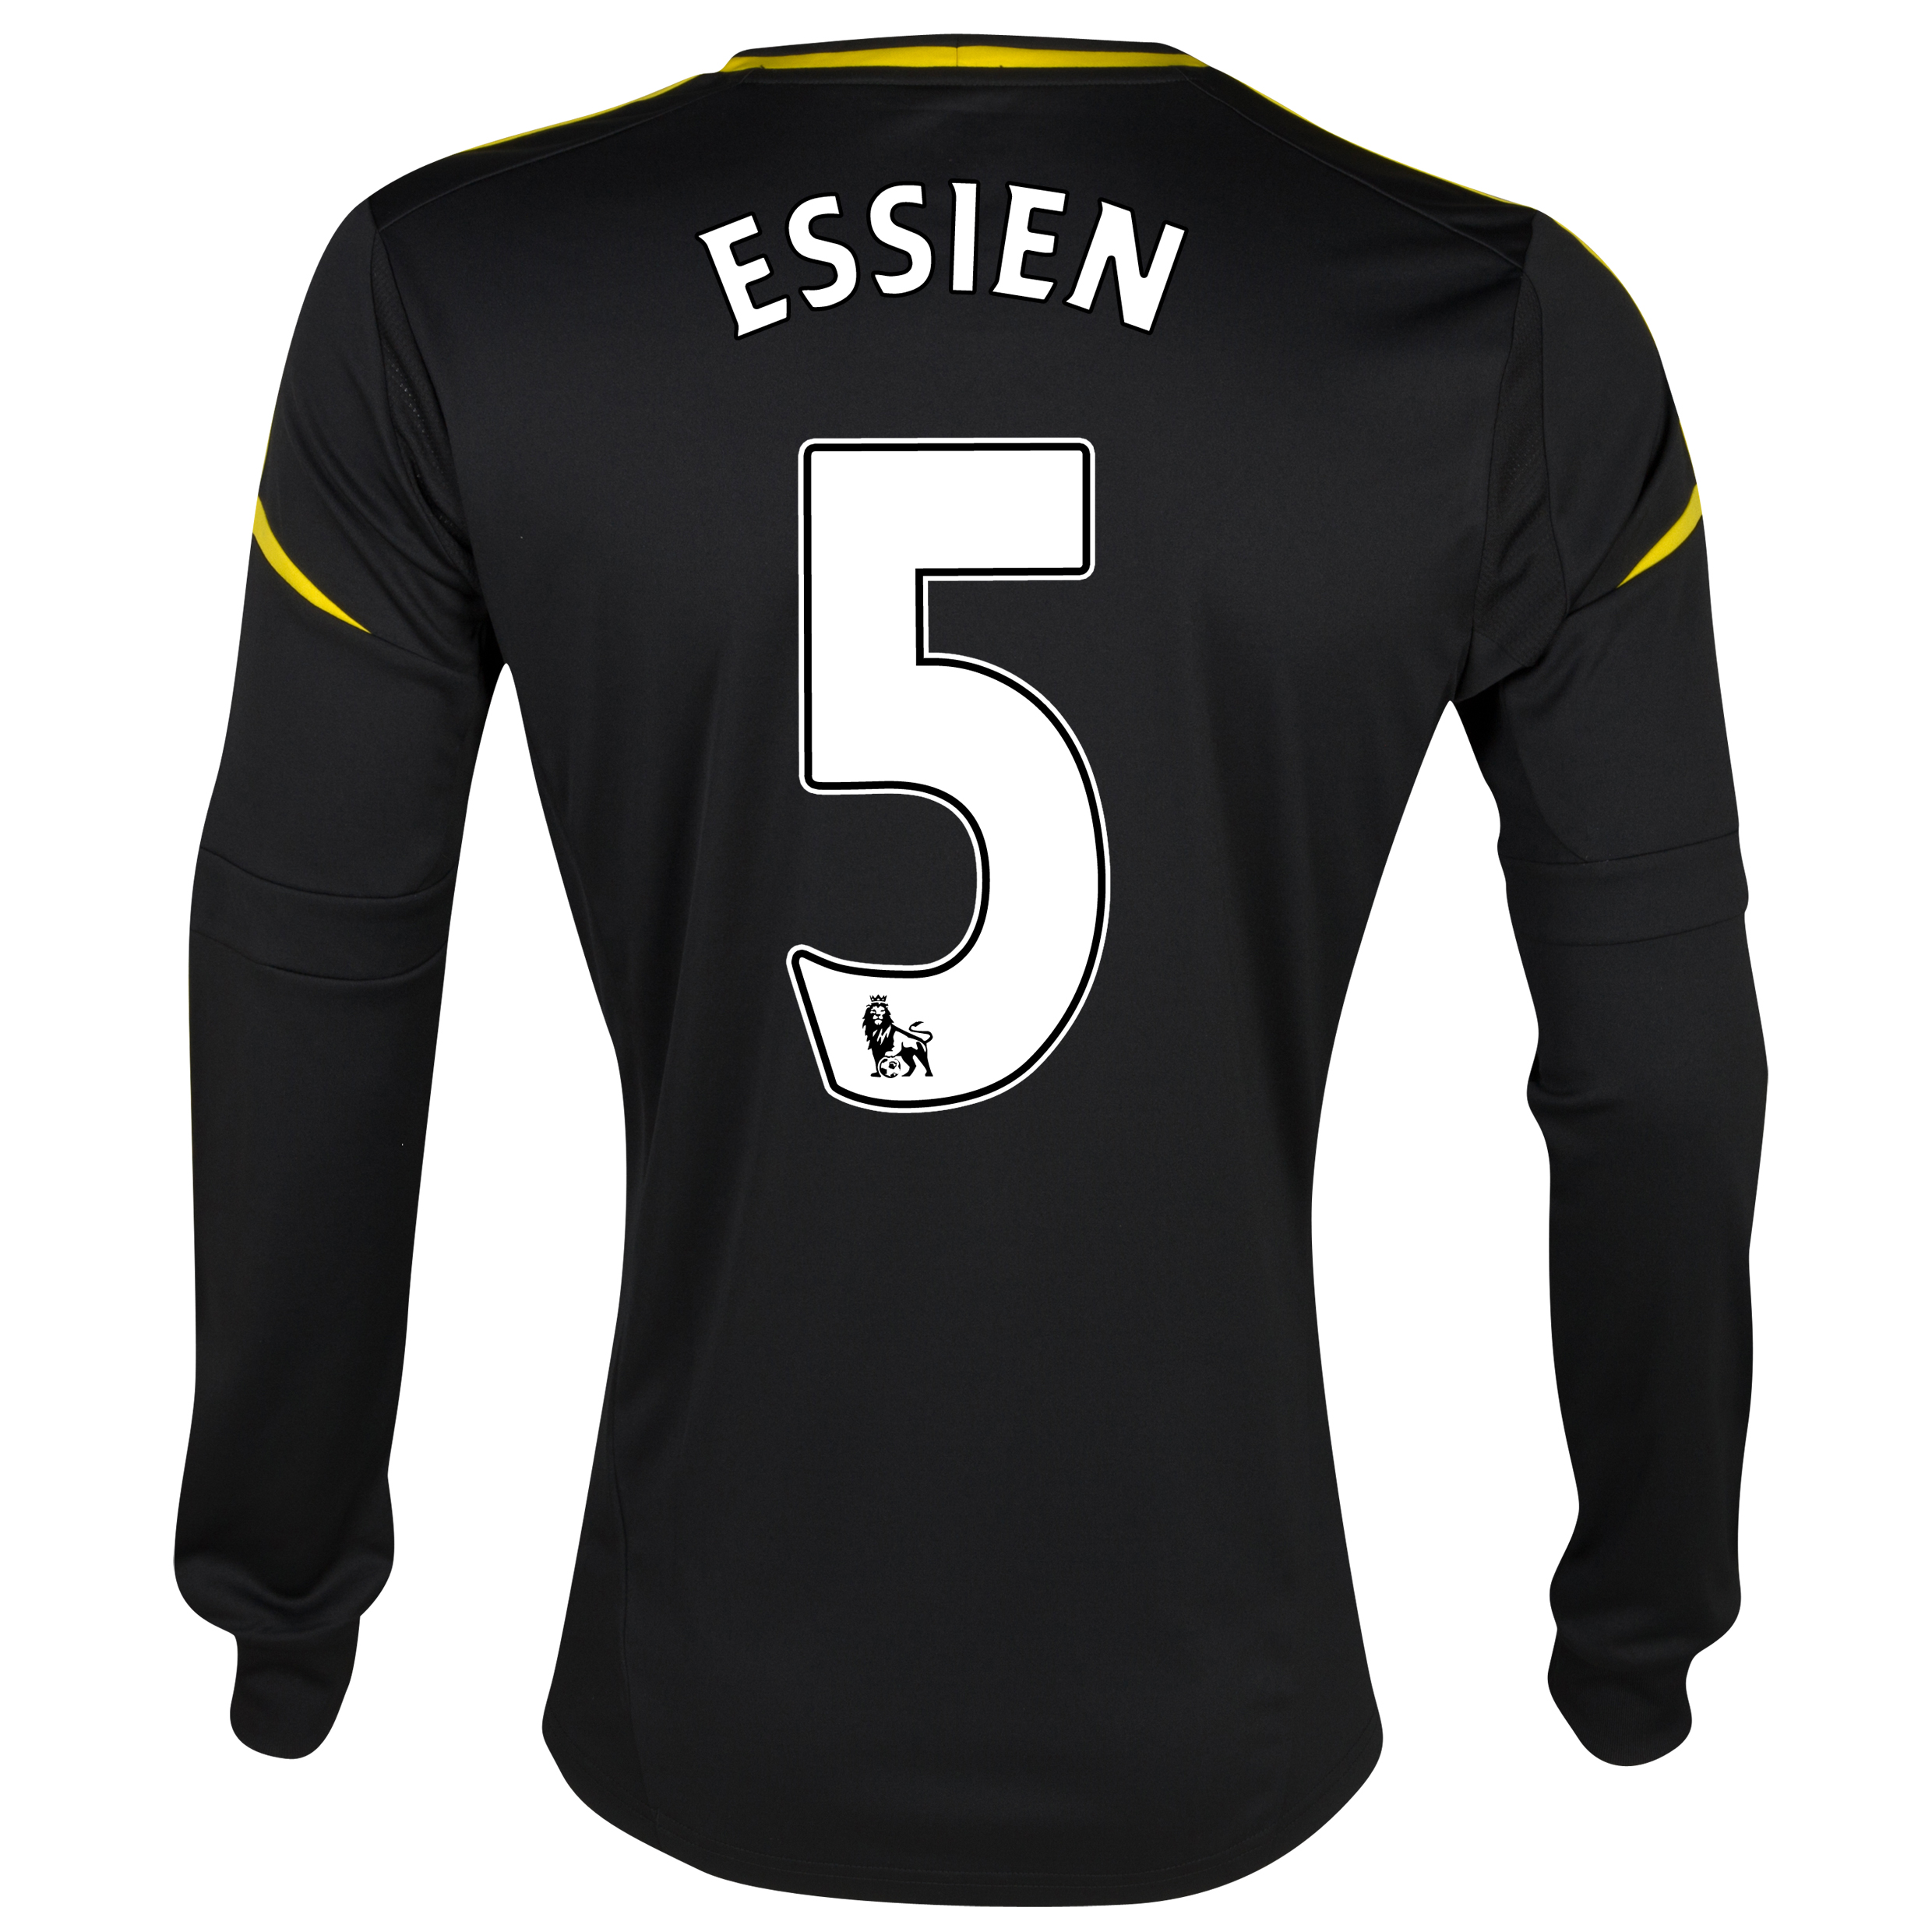 Chelsea Third Shirt 2012/13 - Long Sleeved - Youths with Essien 5 printing